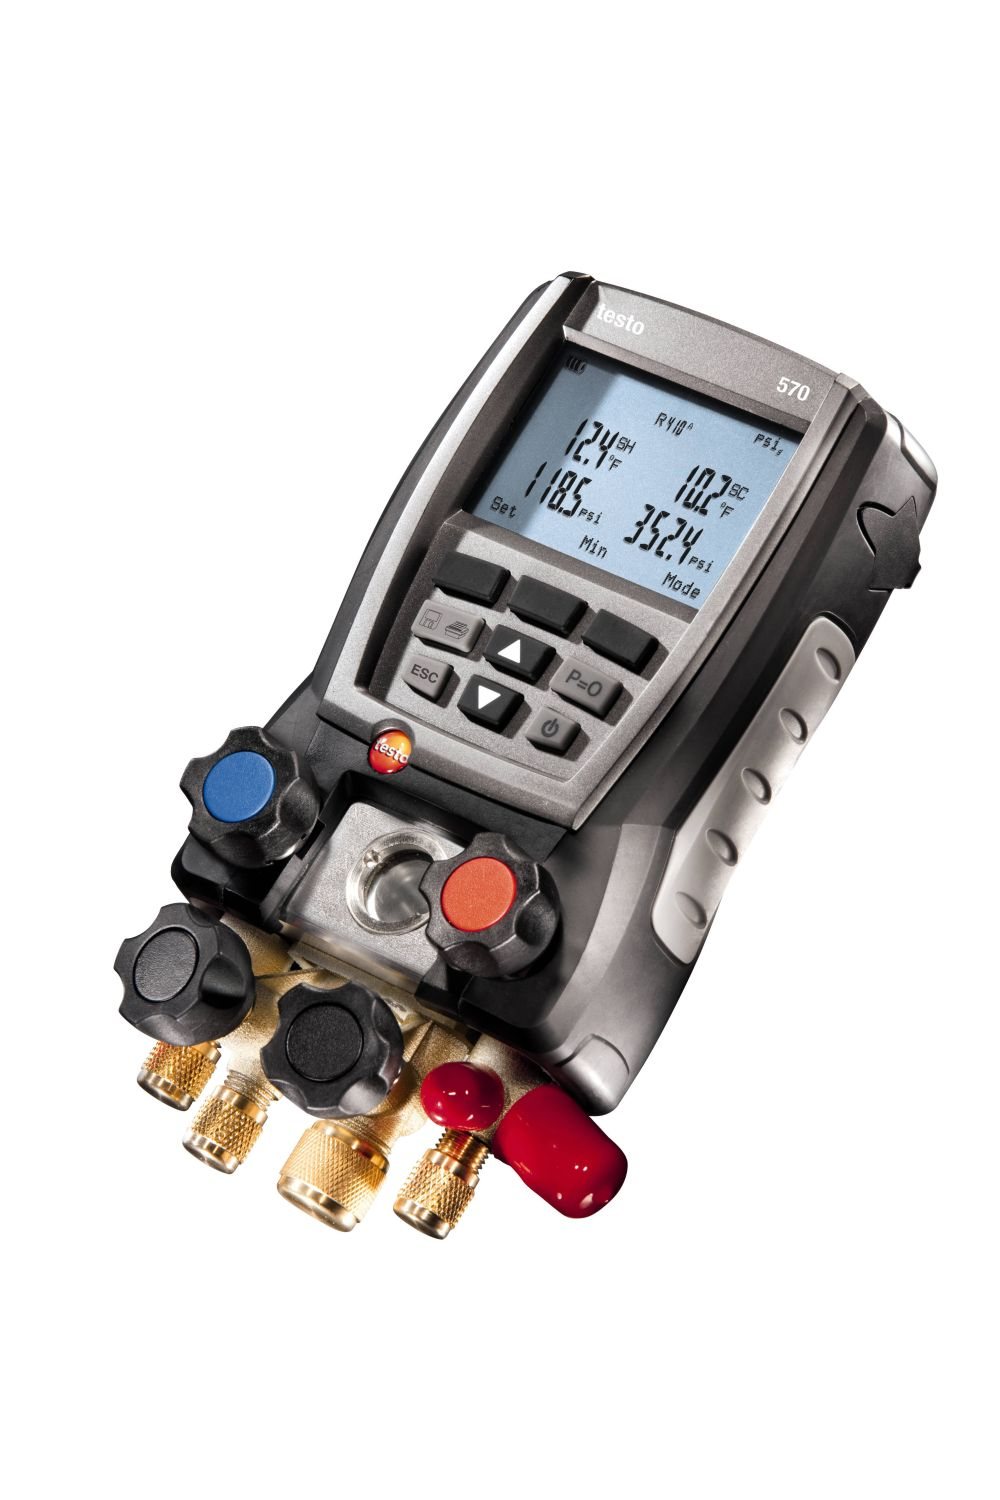 testo 570 Digital Manifold | Refrigeration | Parameters